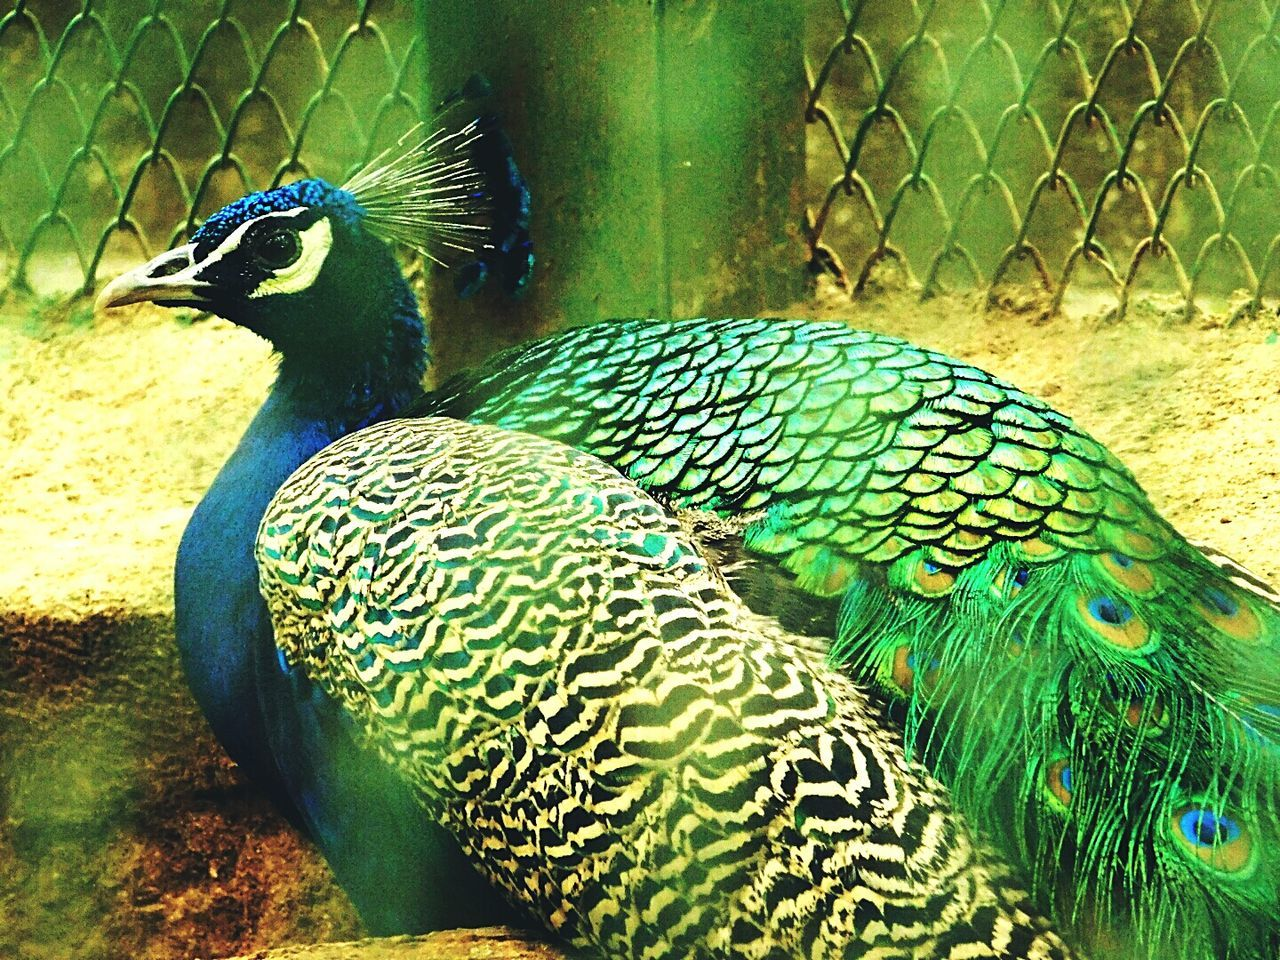 Peacock Bird Multi Colored Beauty In Nature Caged Feeling Sad Sadness😢 Looking At Camera Looking For Freedom Alone Wildlife Photography